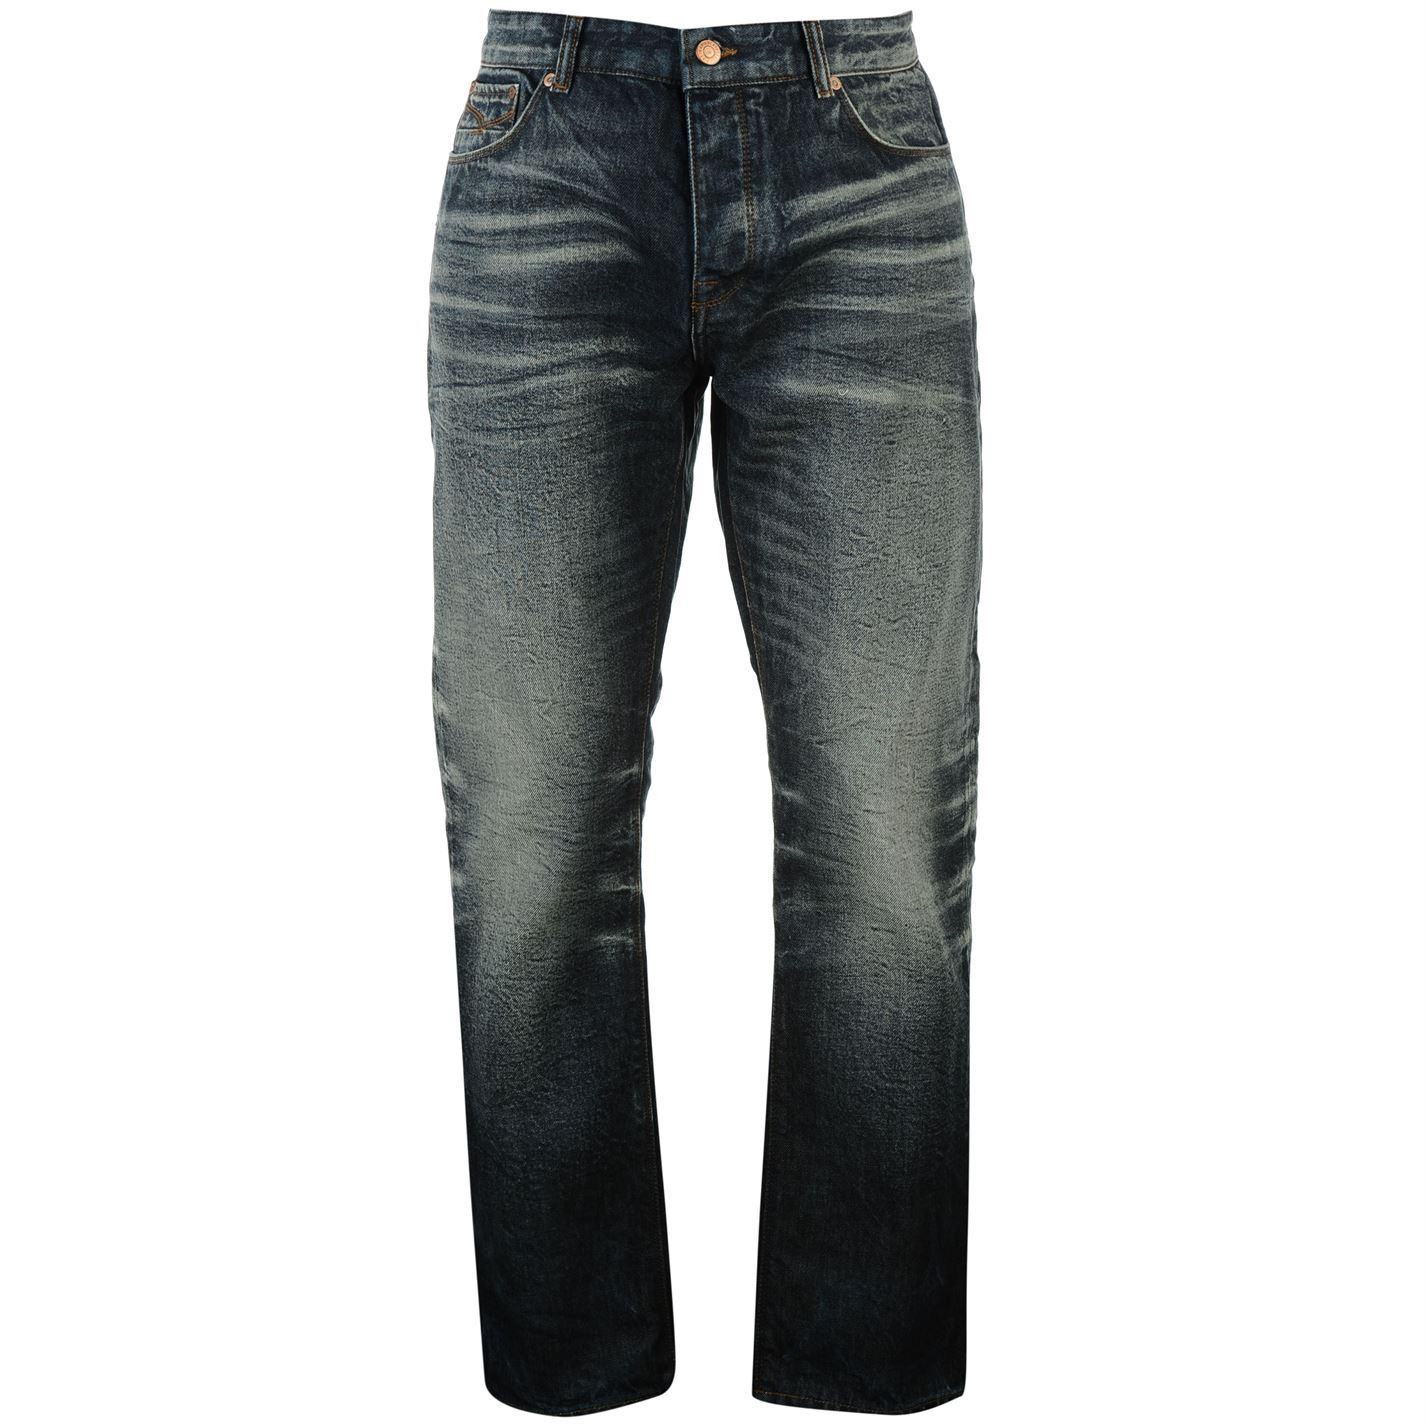 Find great deals on eBay for mens levis premium jeans. Shop with confidence.